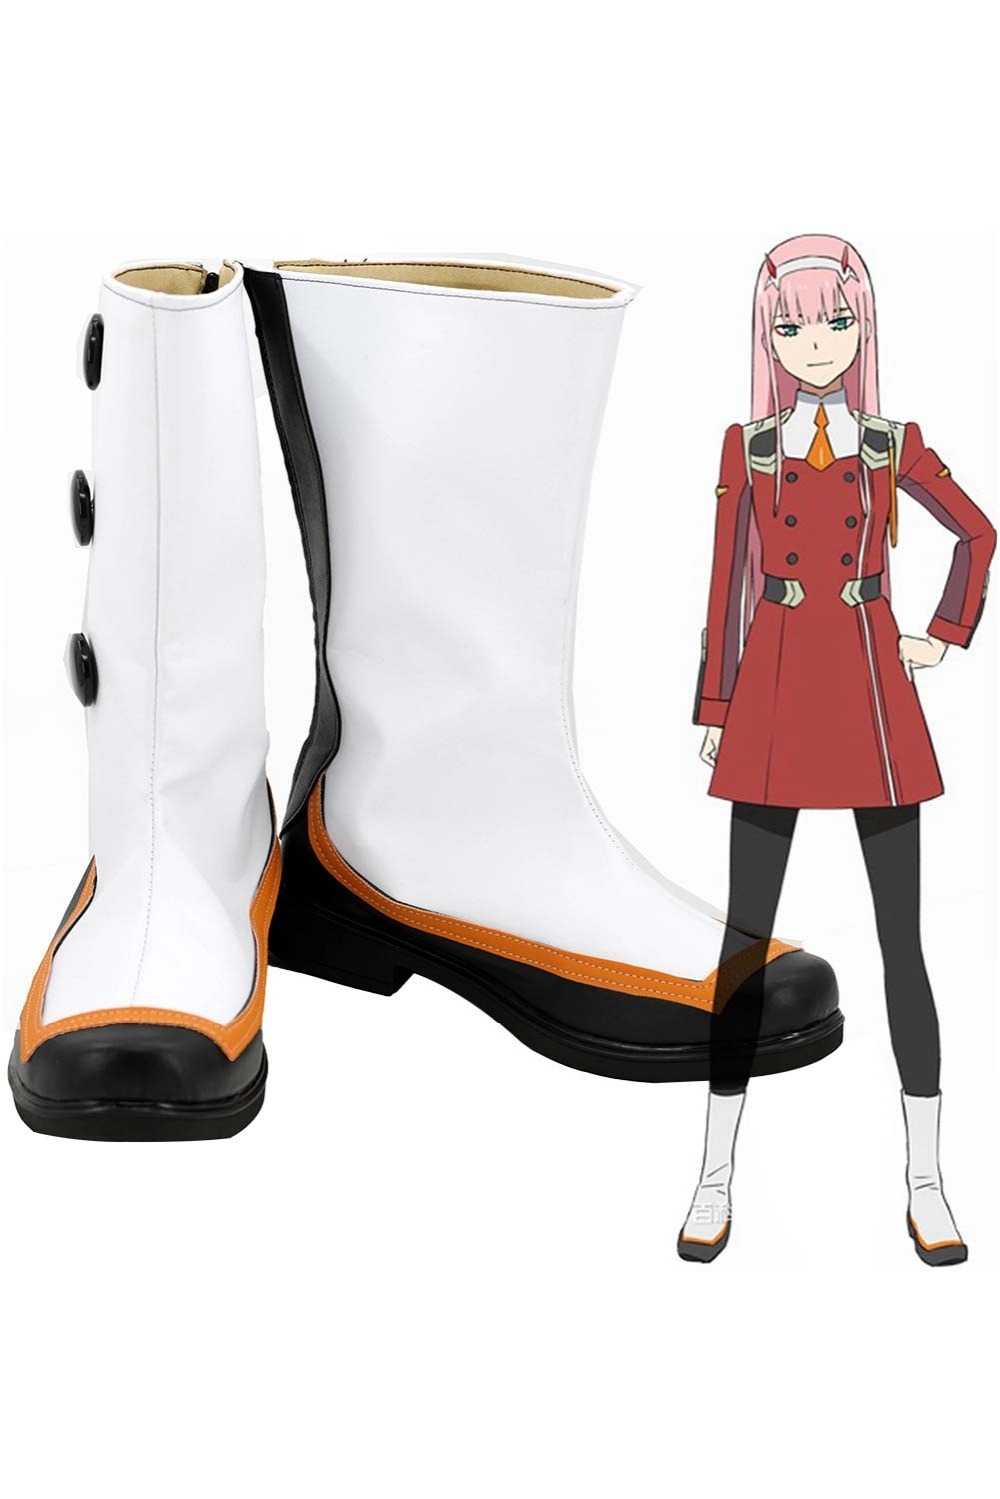 DARLING in the FRANXX Zero Two Boots Shoes Code: 002 Cosplay Boots Shoes Zero Two 02 Cosplay Accessories